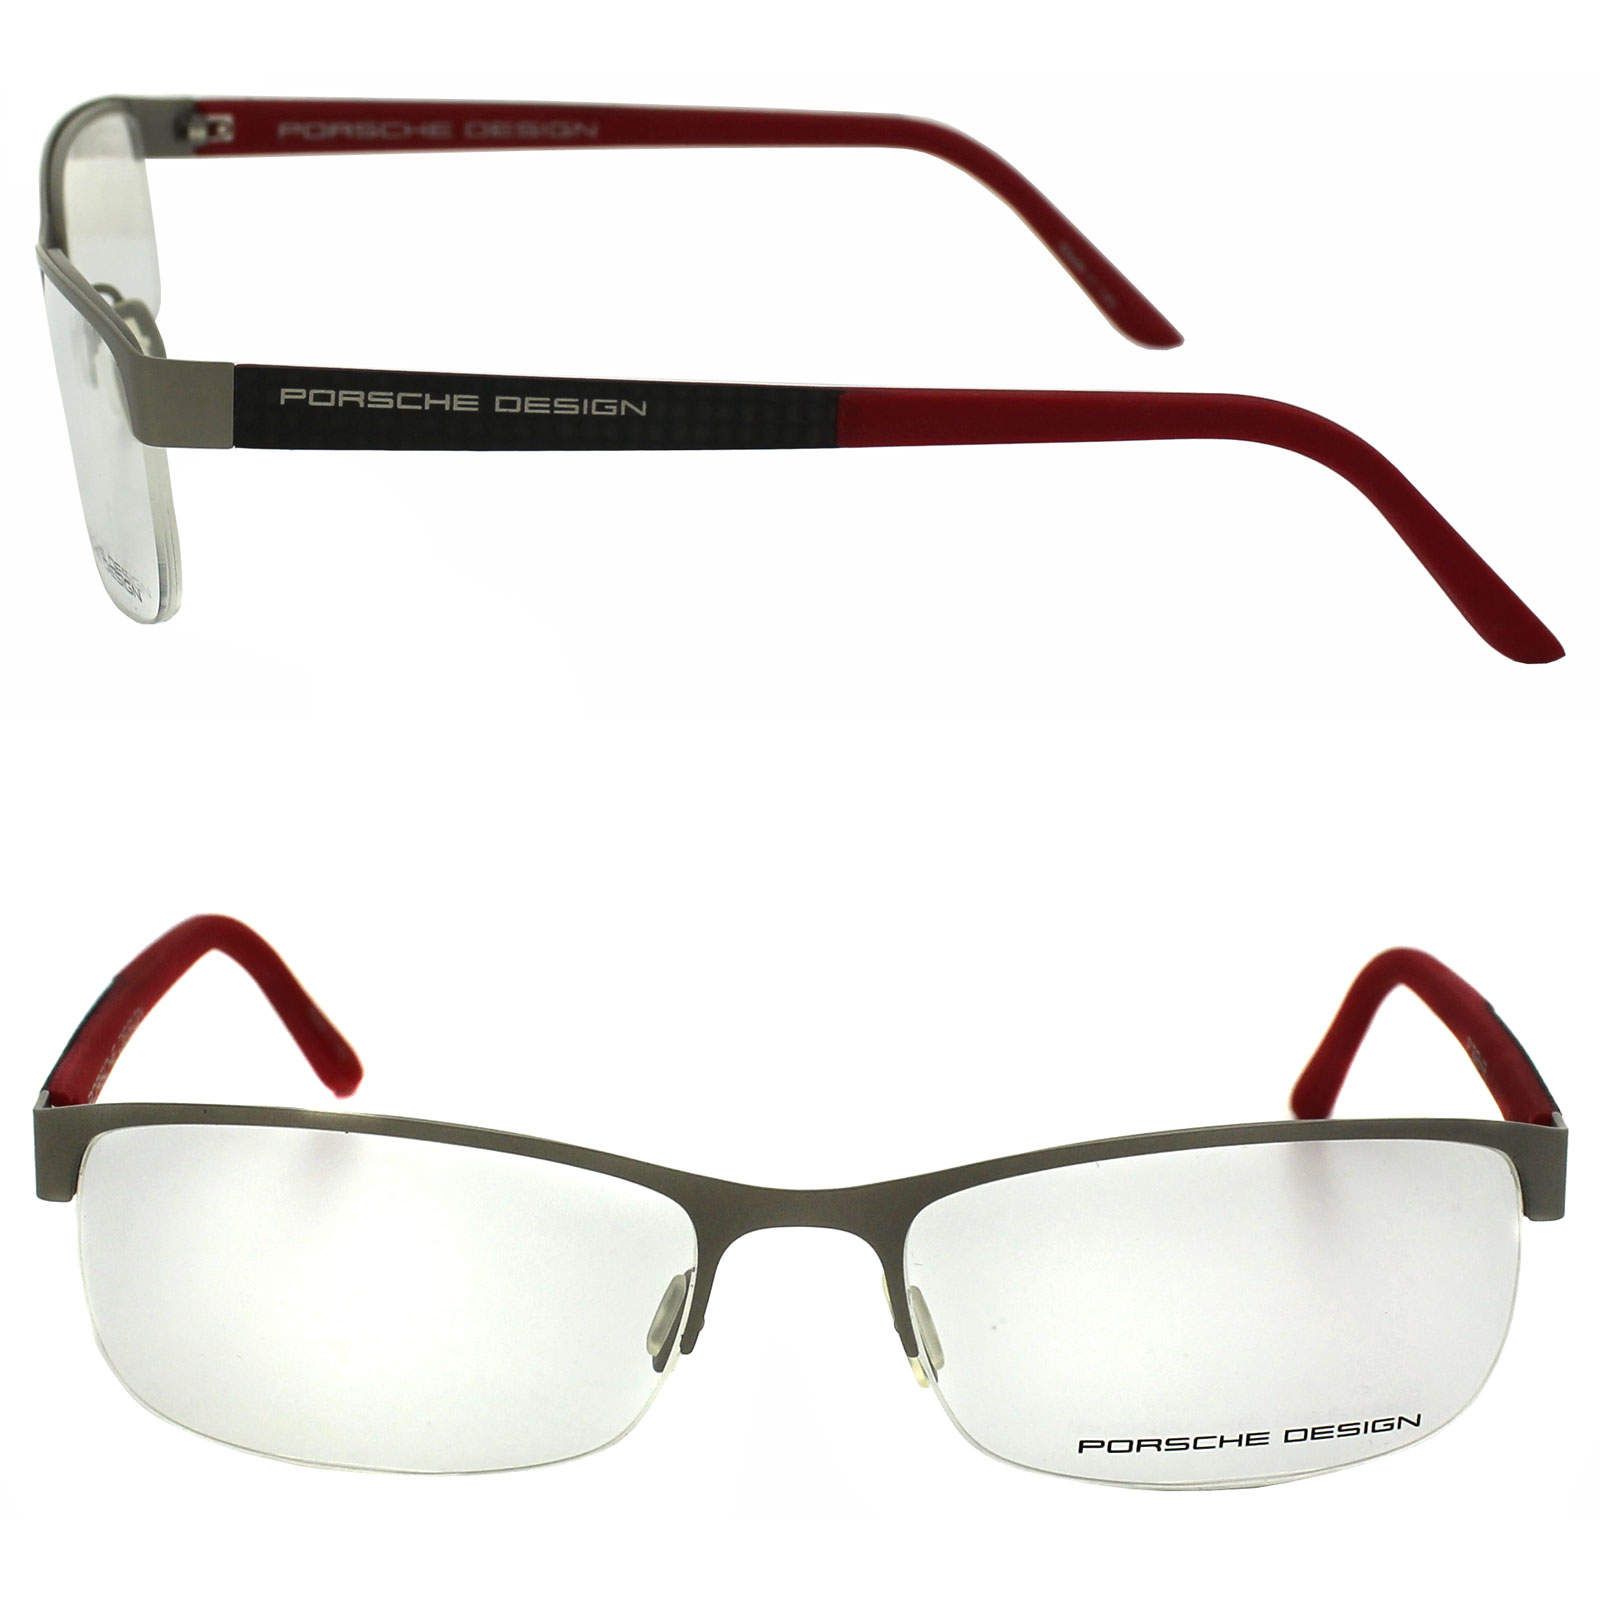 Porsche Design Glasses Frame : Cheap Porsche Design P8242 Glasses Frames - Discounted ...